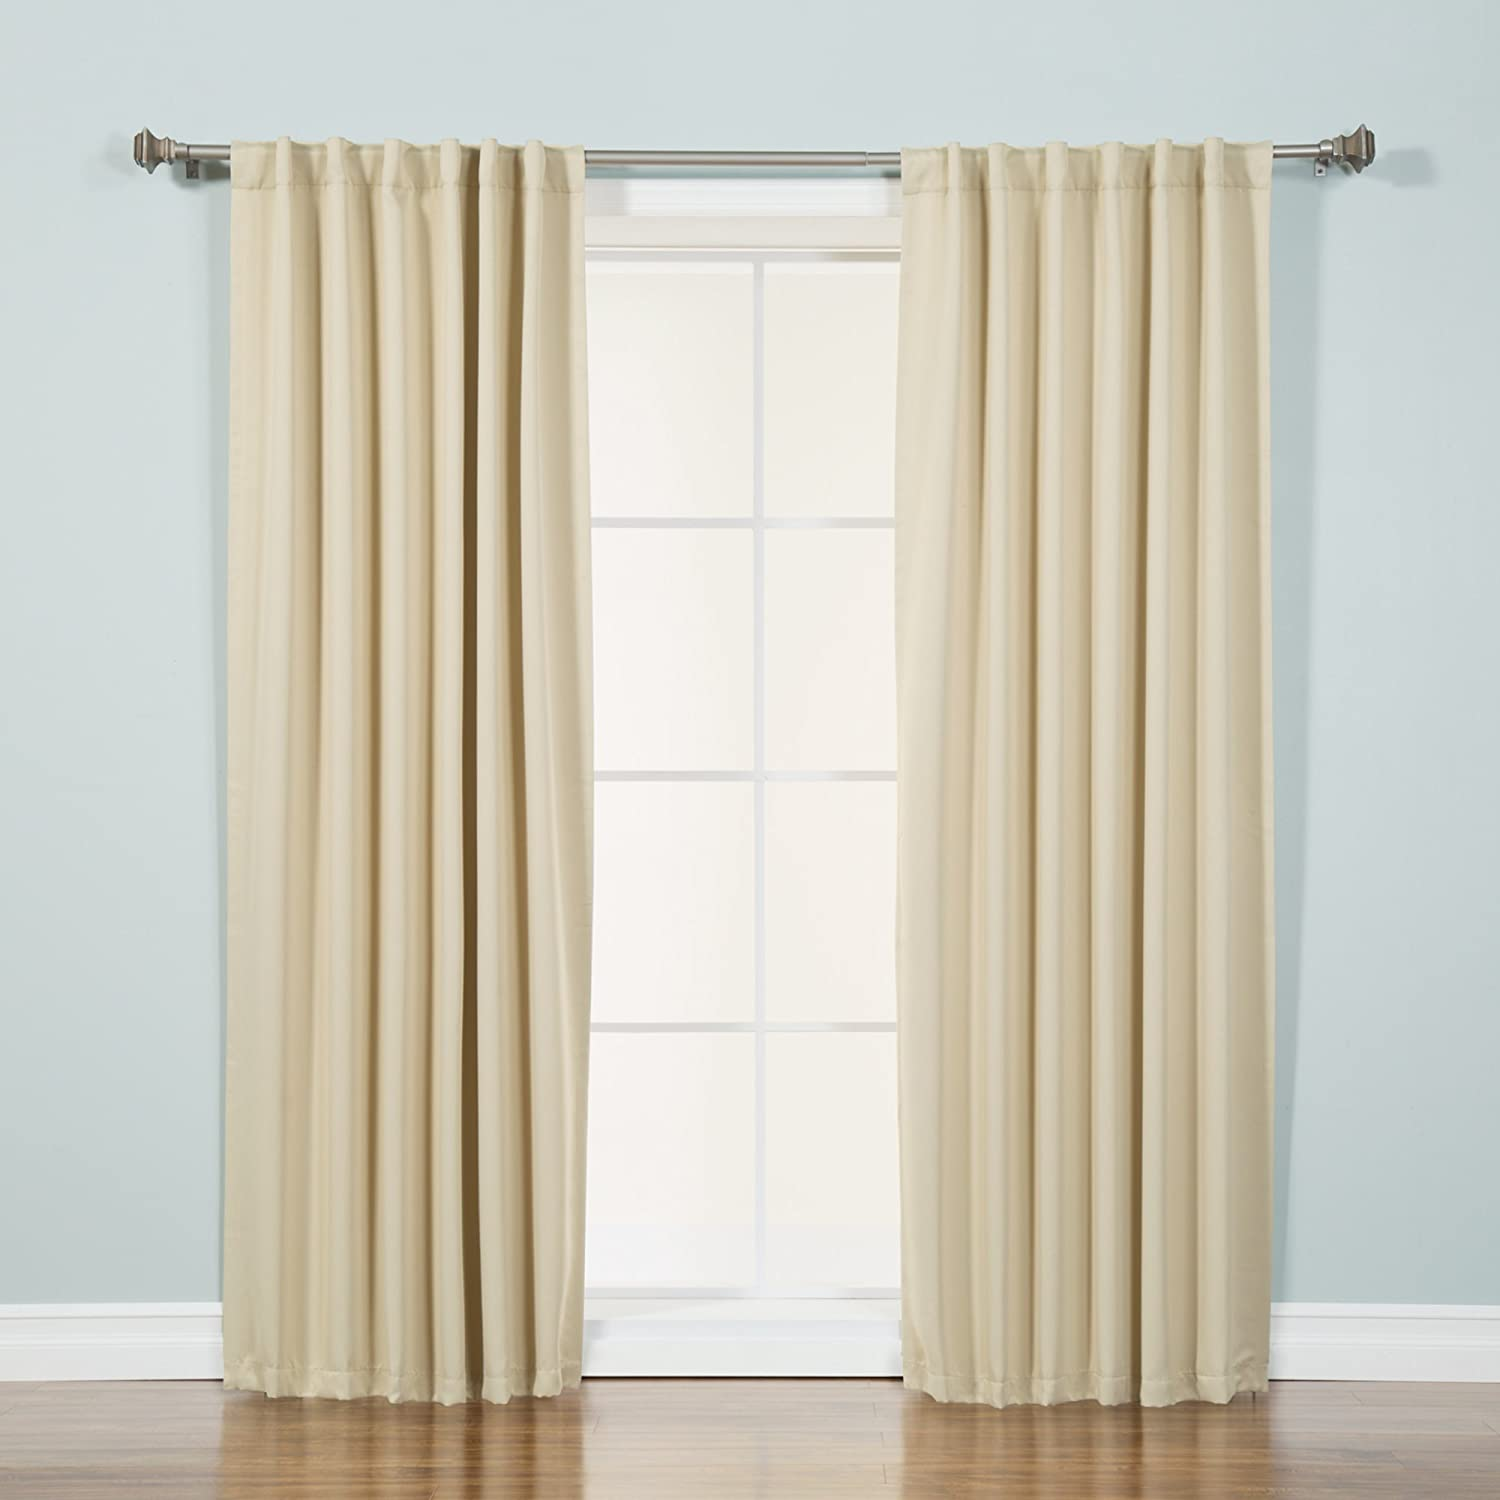 Top 8 Best Curtains For Noise Reduction - Buyer's Guide 6